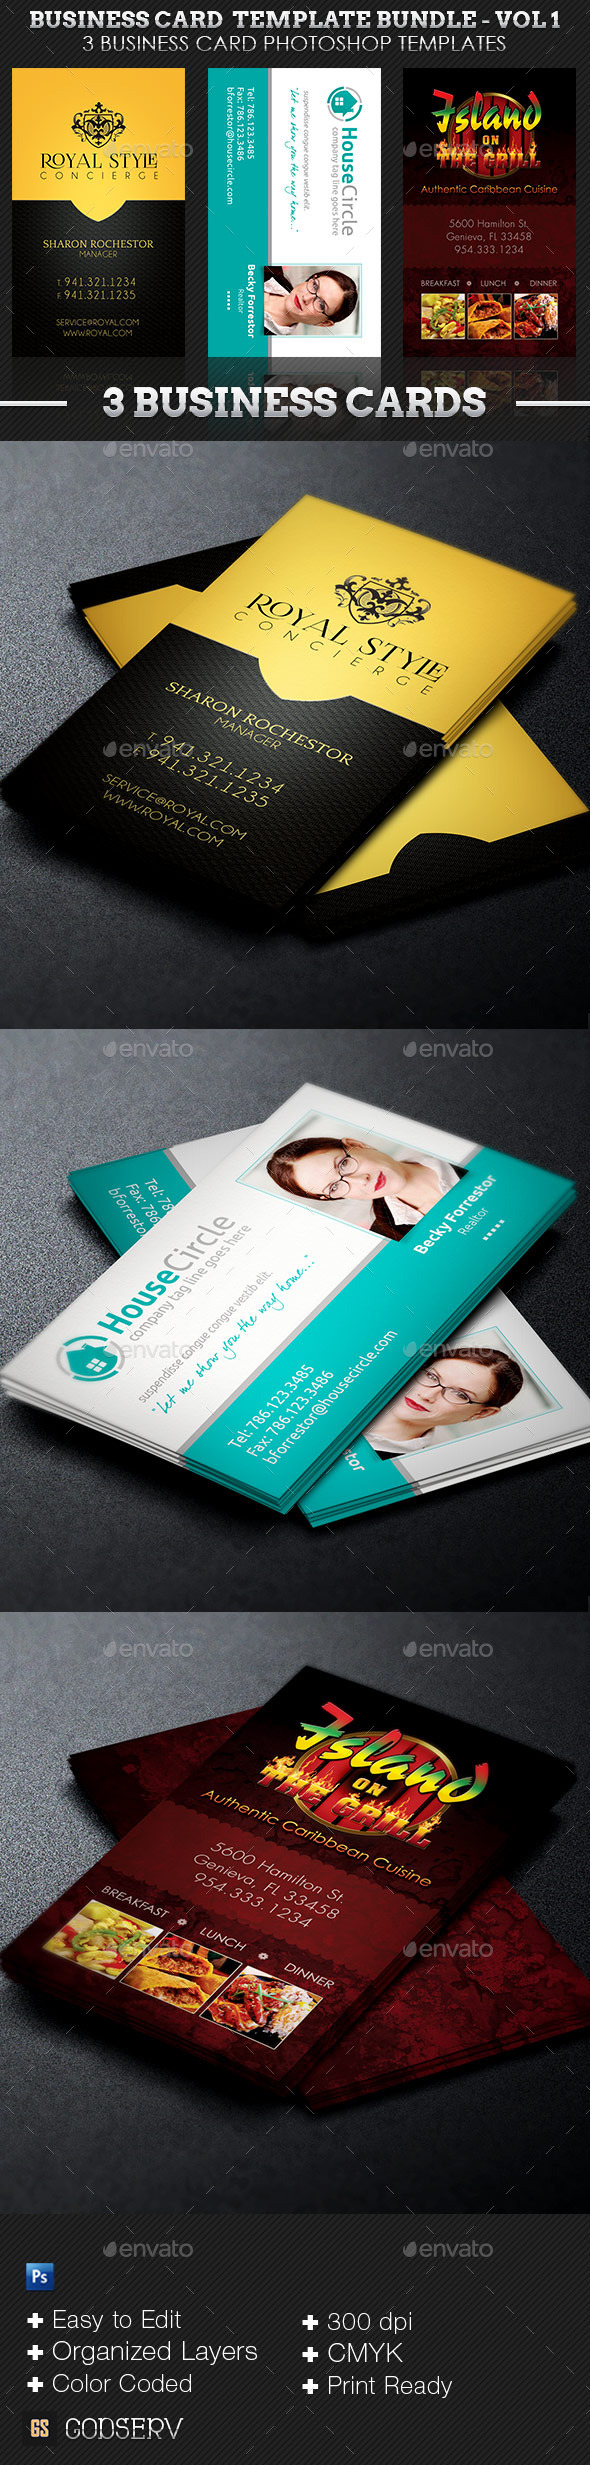 Business Card Template Bundle - Volume 1 - Industry Specific Business Cards